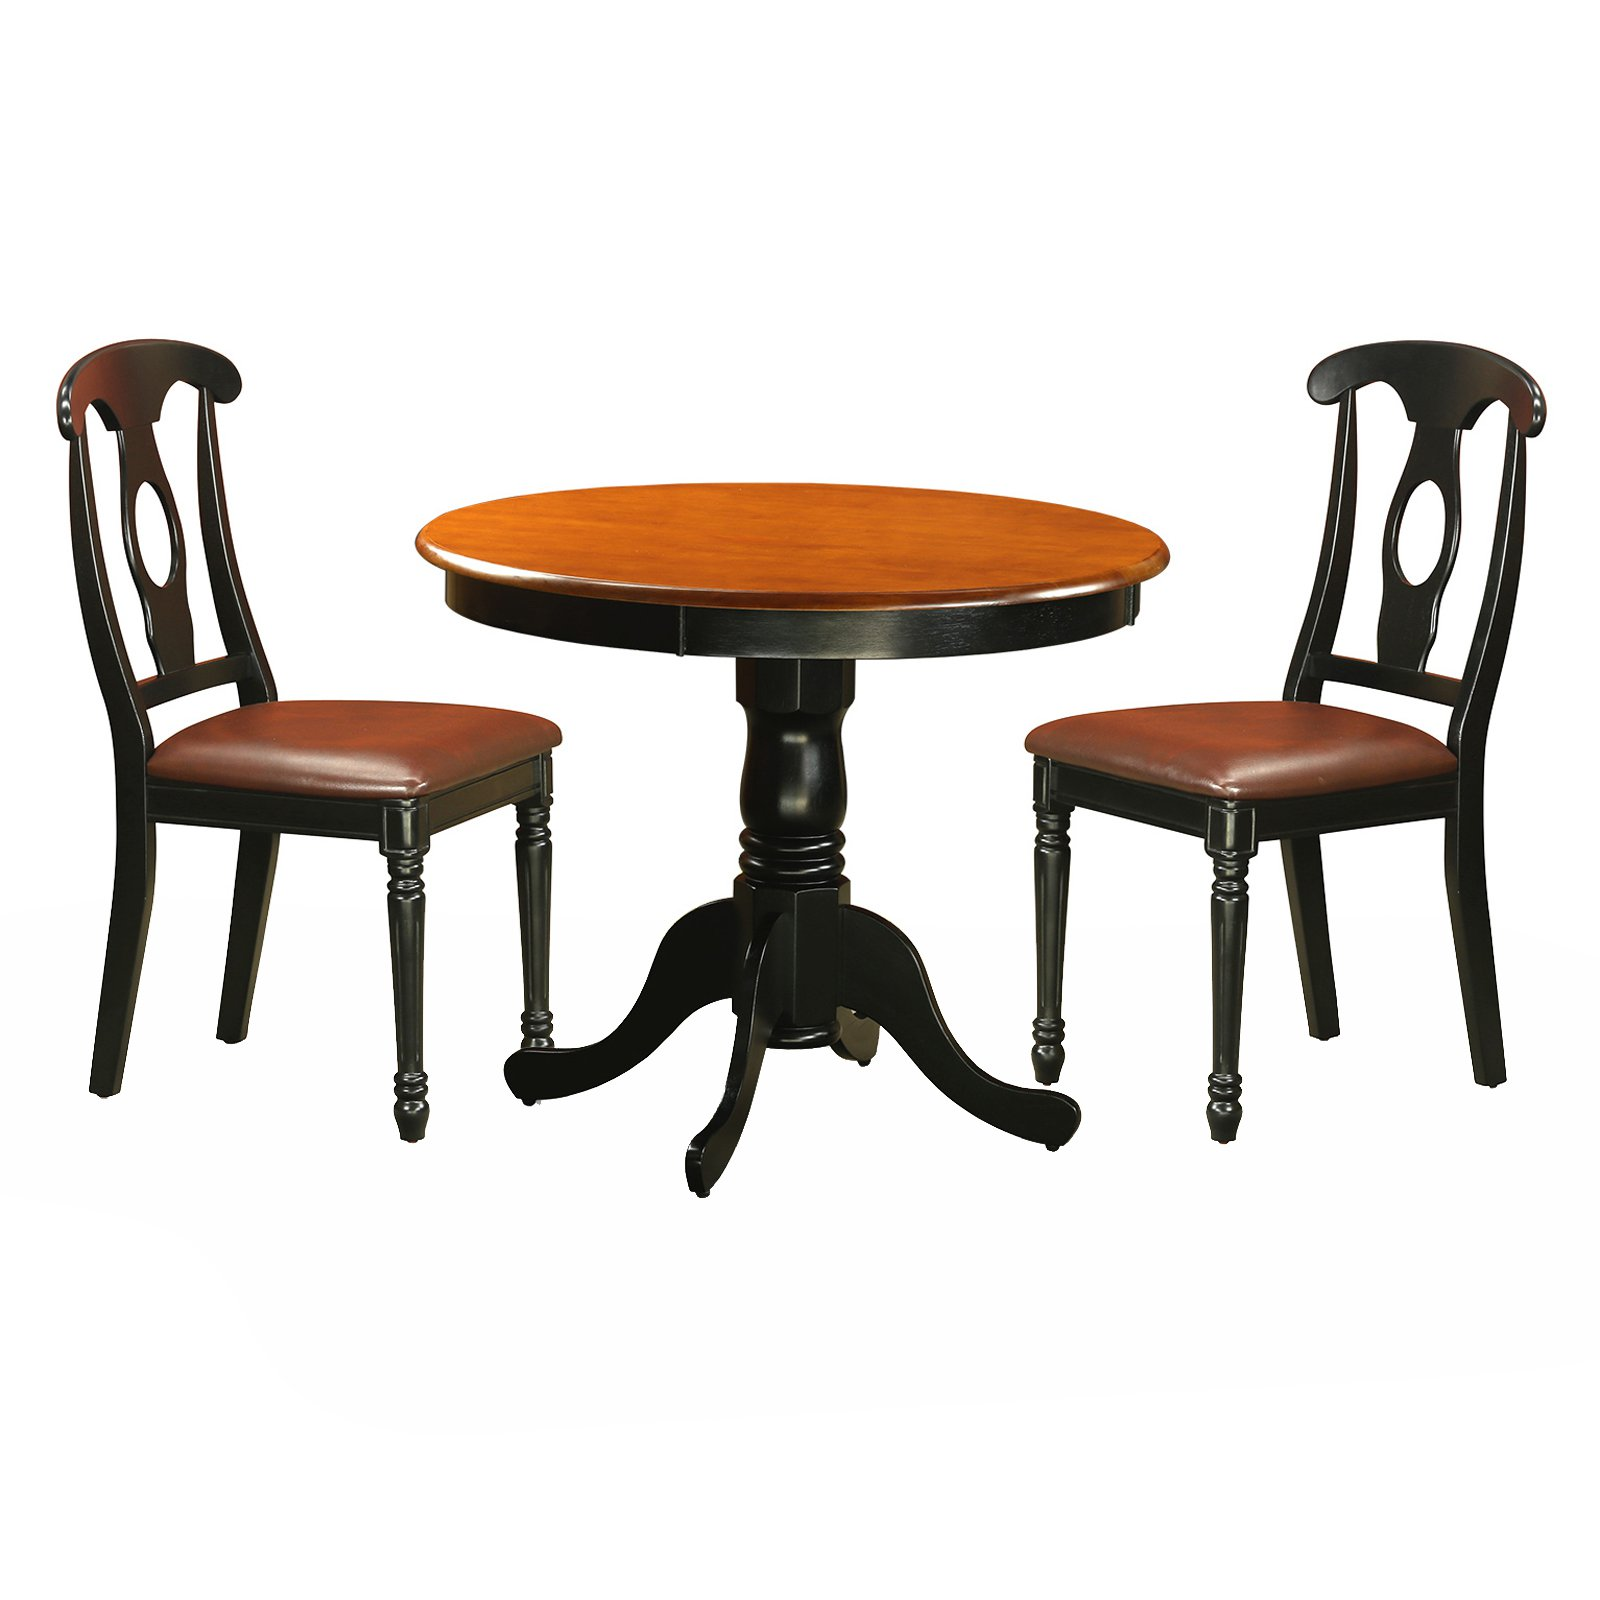 East West Furniture Antique 3 Piece Pedestal Round Dining Table Set with Kenley Faux Leather Seat Chairs